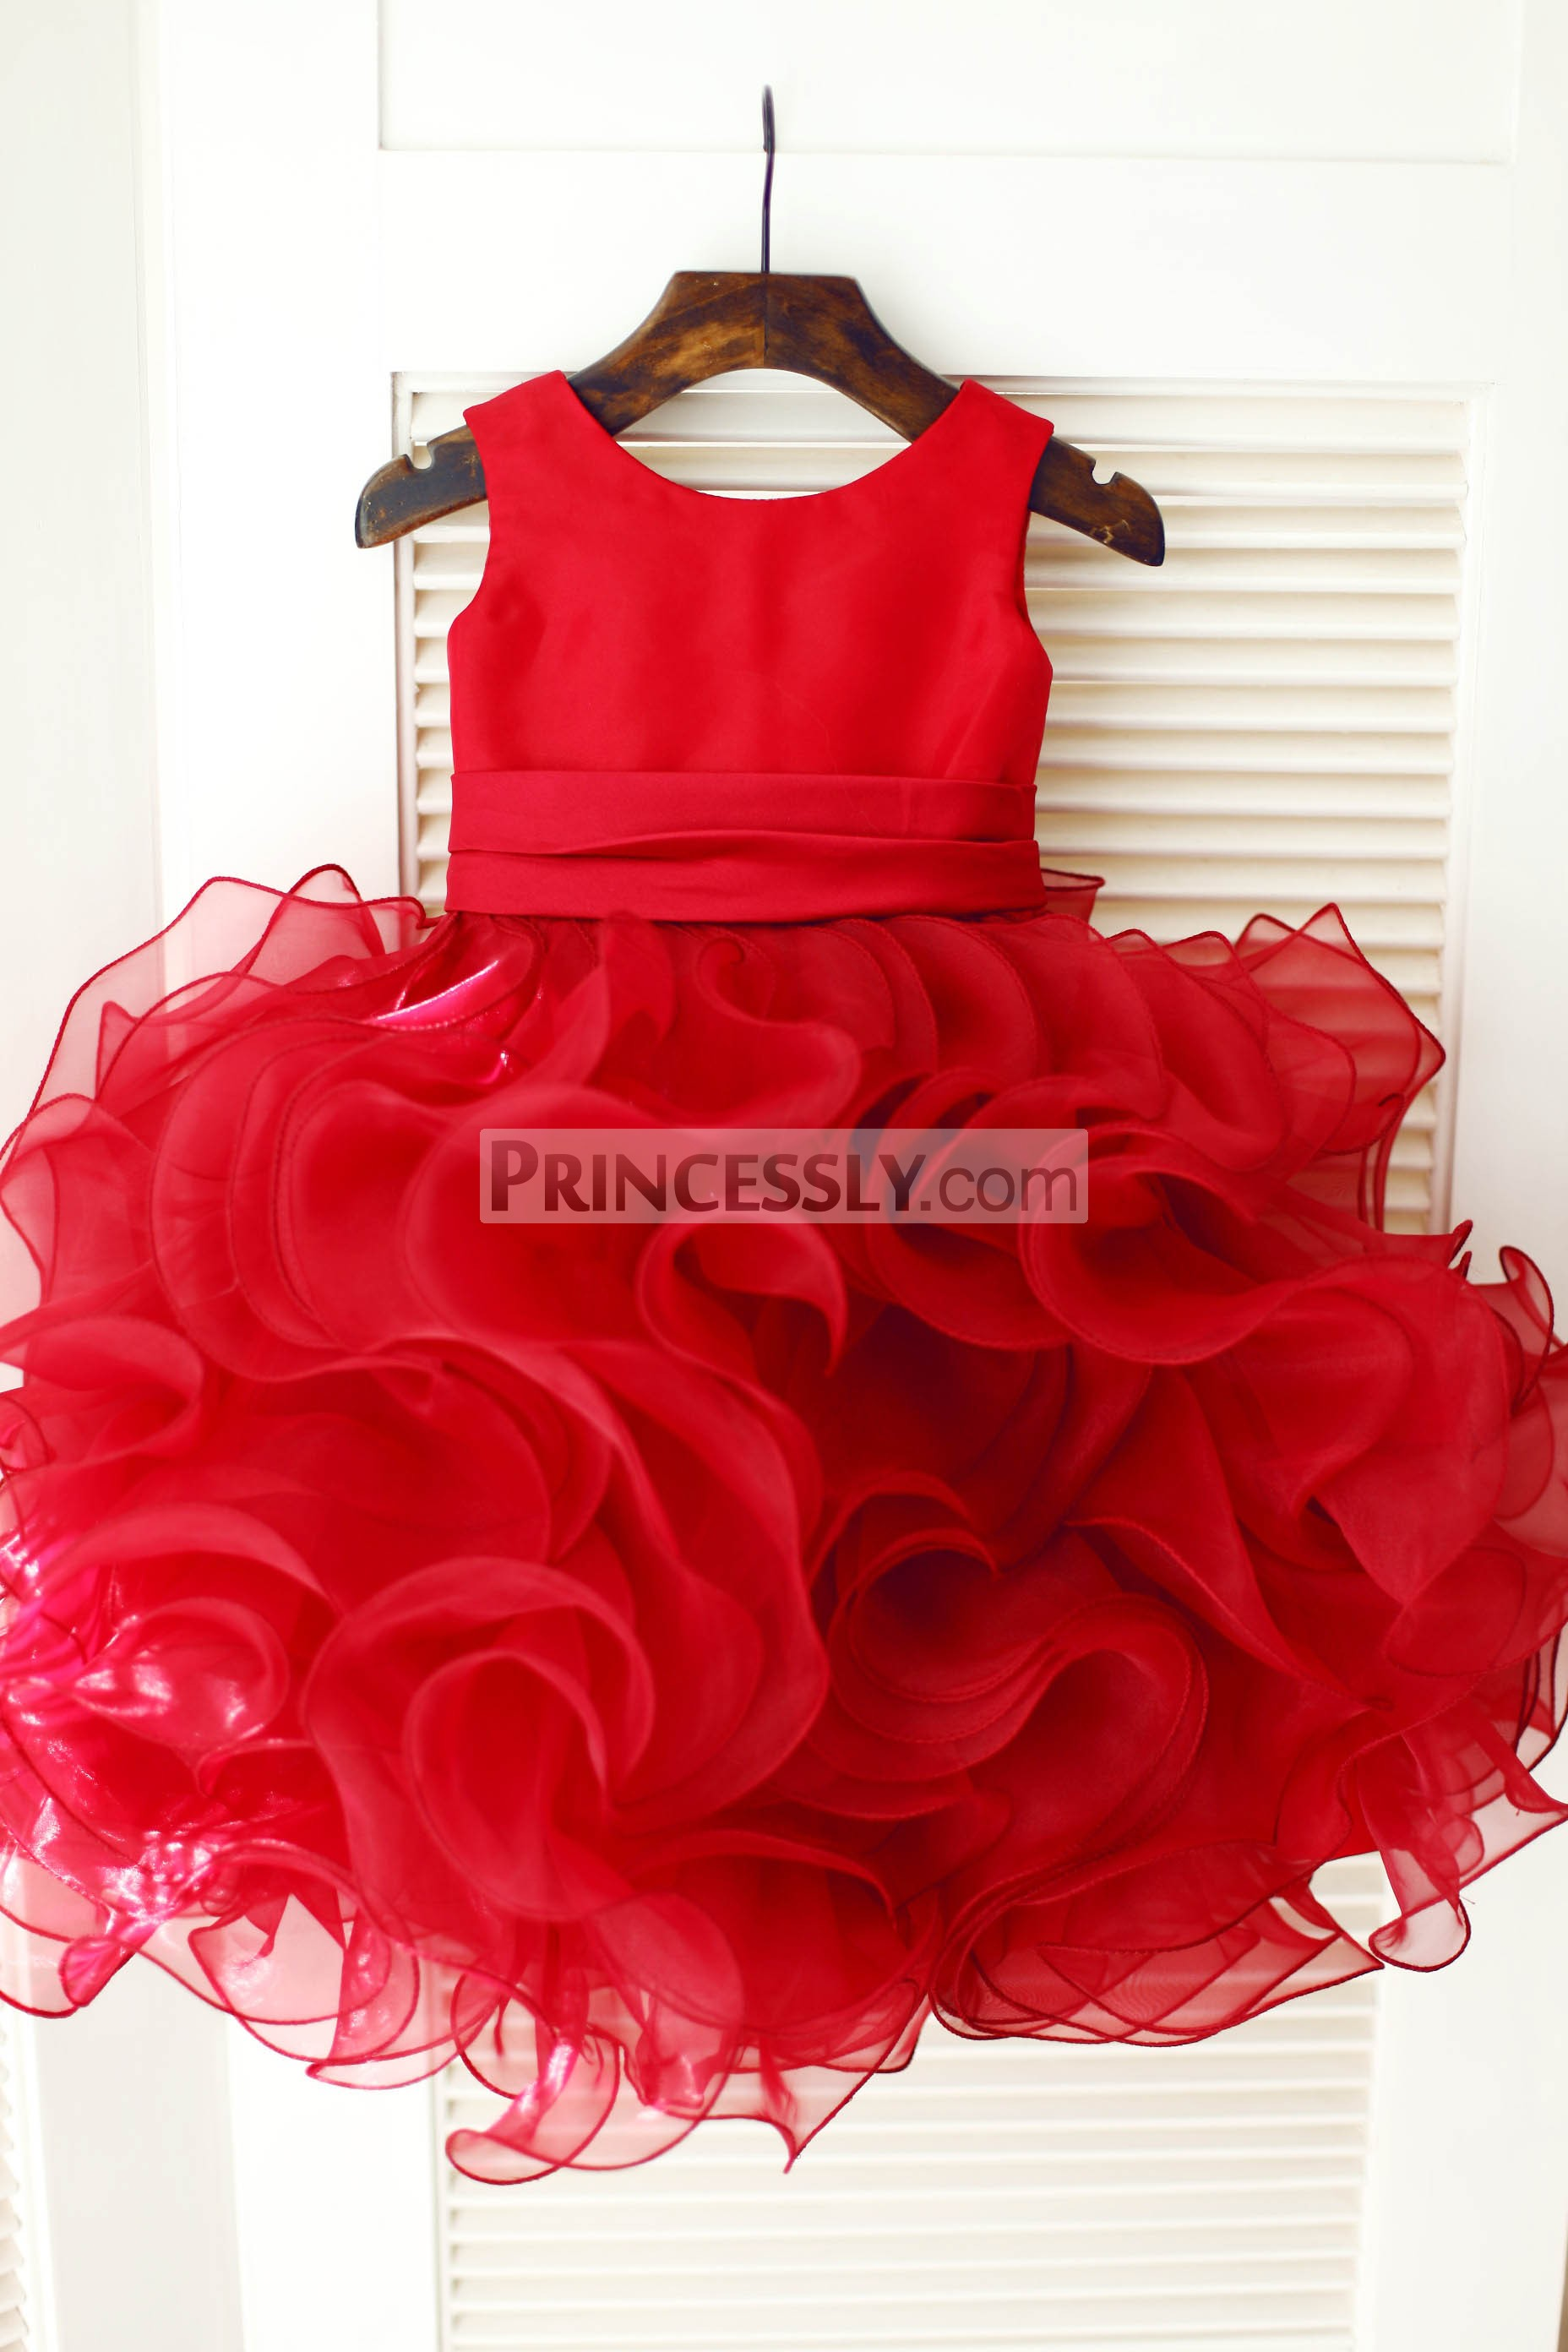 Ruffled Organza Skirt With Embroidered And Beaded Bodice: Red Satin Ruffles Organza Ball Gown Flower Girl Dress